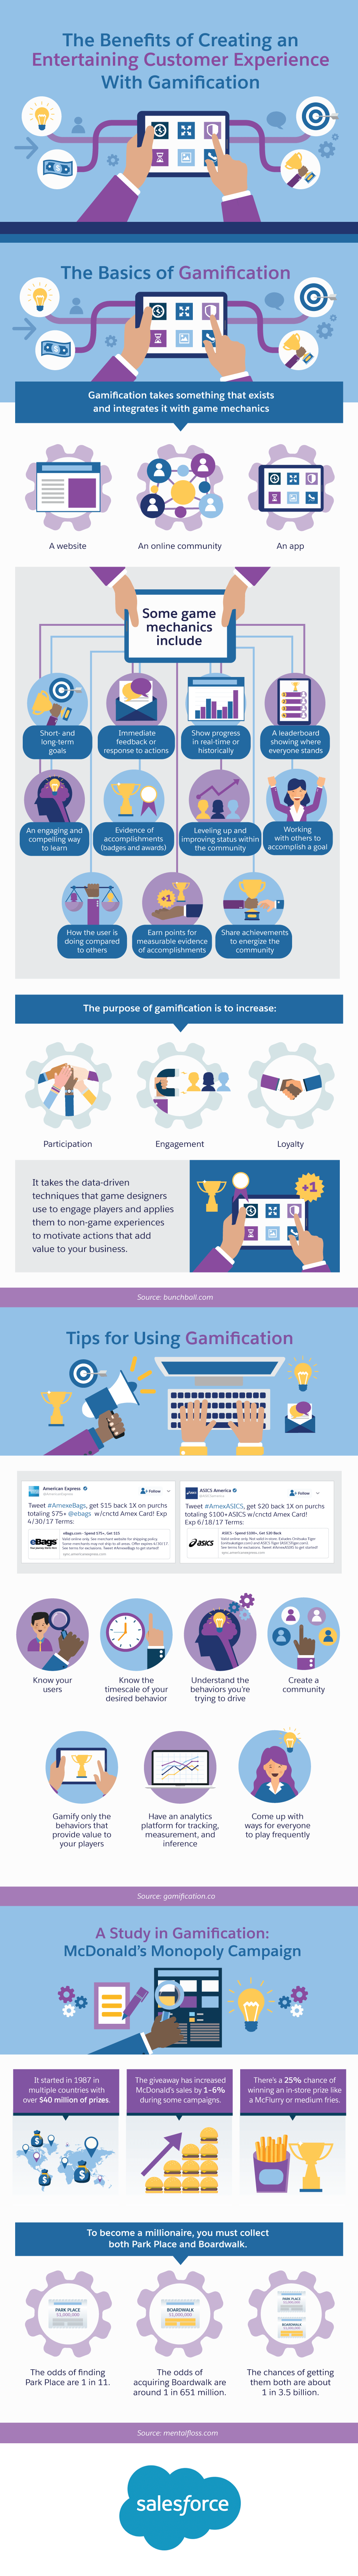 The Benefits of Creating an Entertaining Customer Experience With Gamification